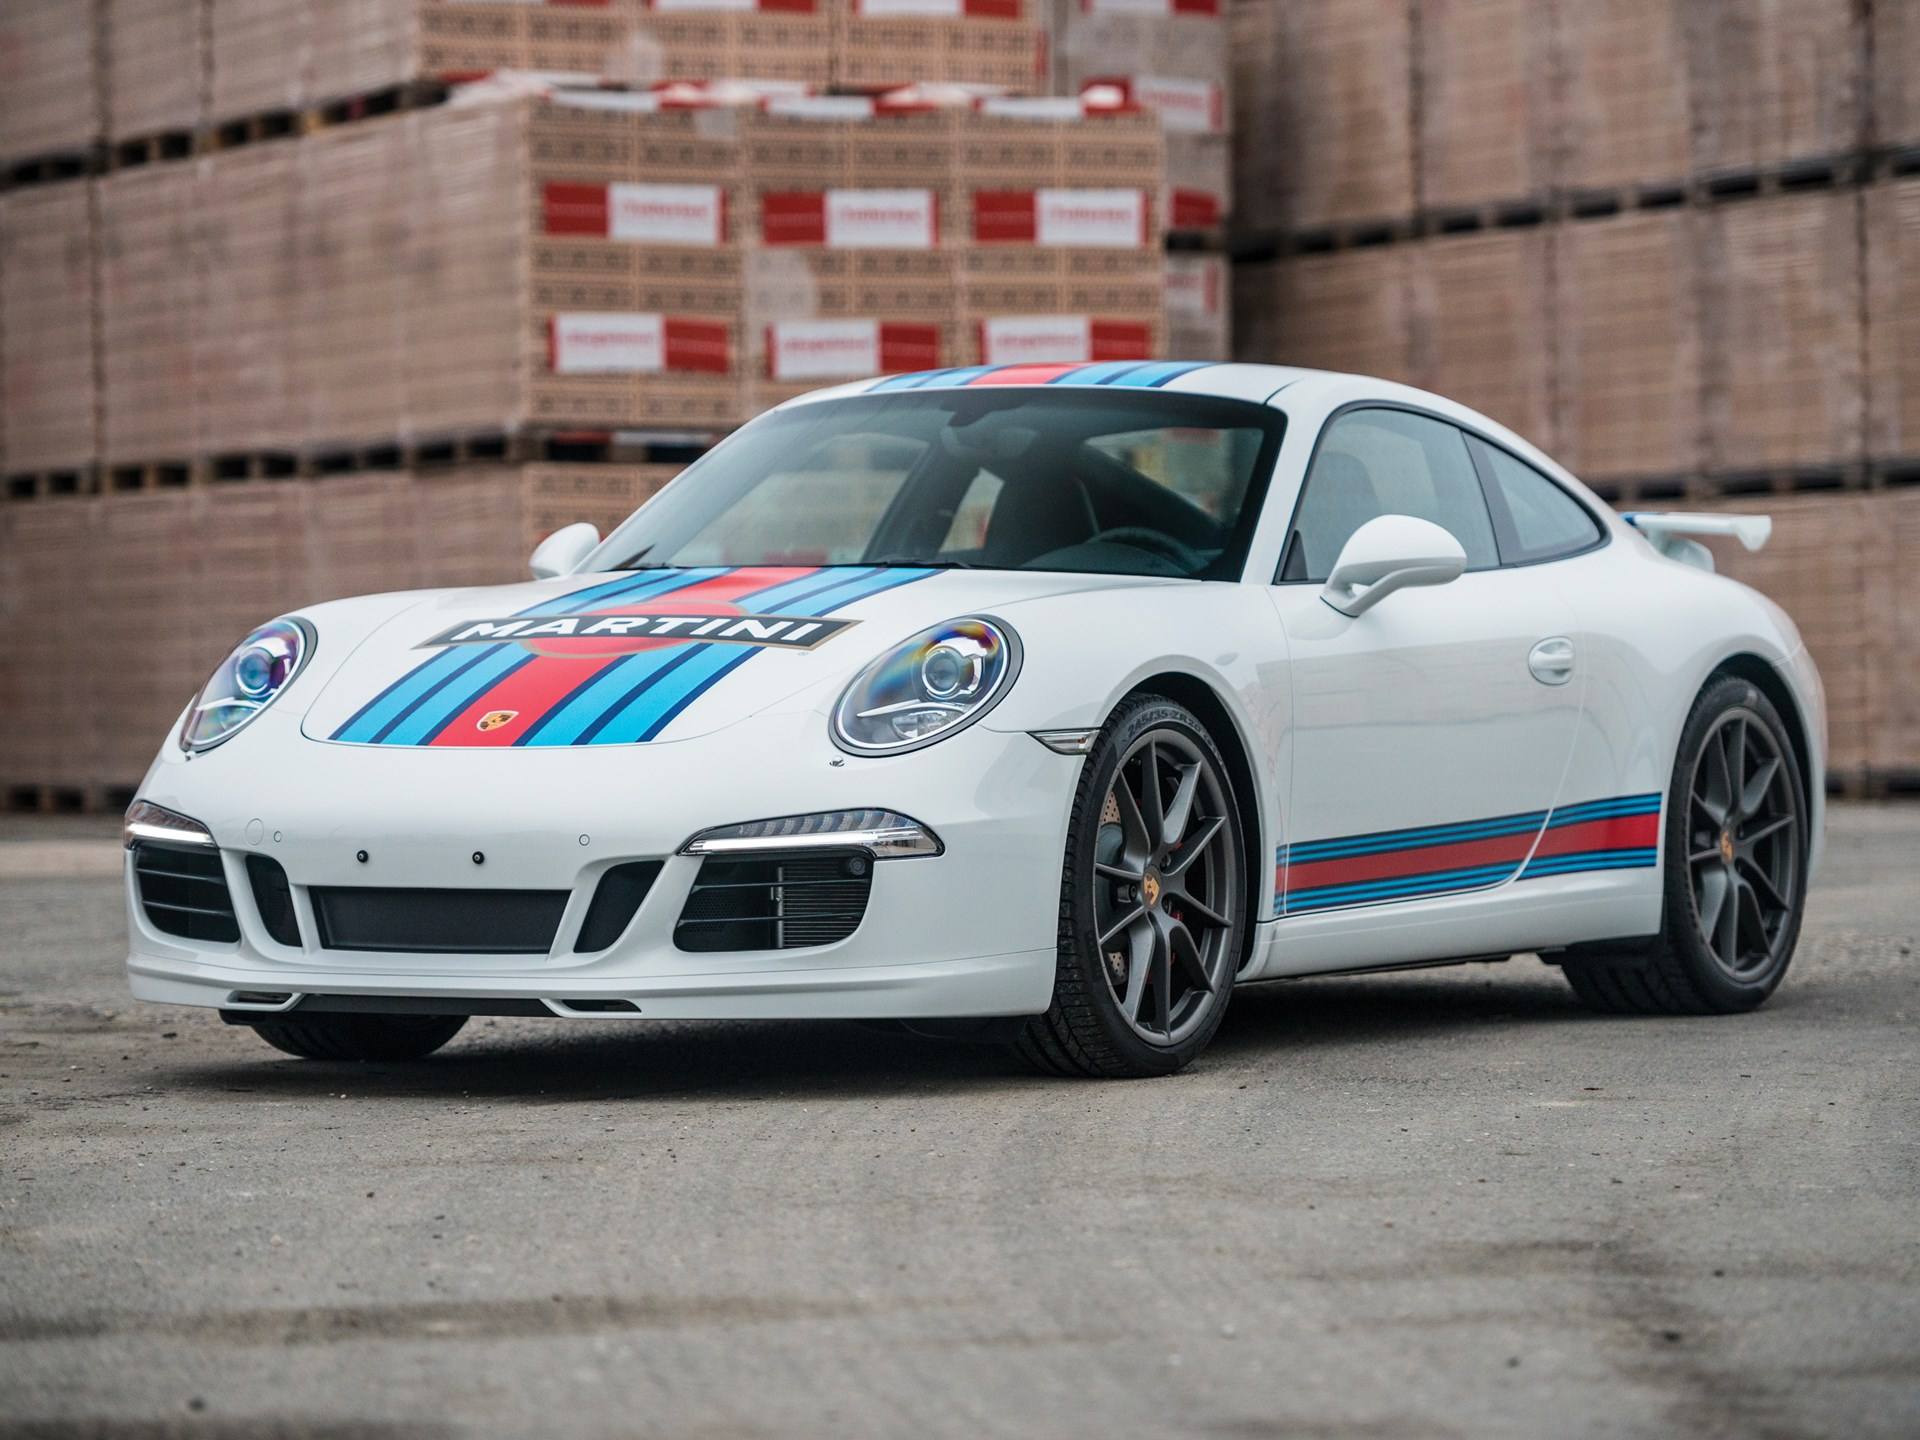 rm sotheby 39 s 2014 porsche 911 carrera s martini racing edition paris 2017. Black Bedroom Furniture Sets. Home Design Ideas